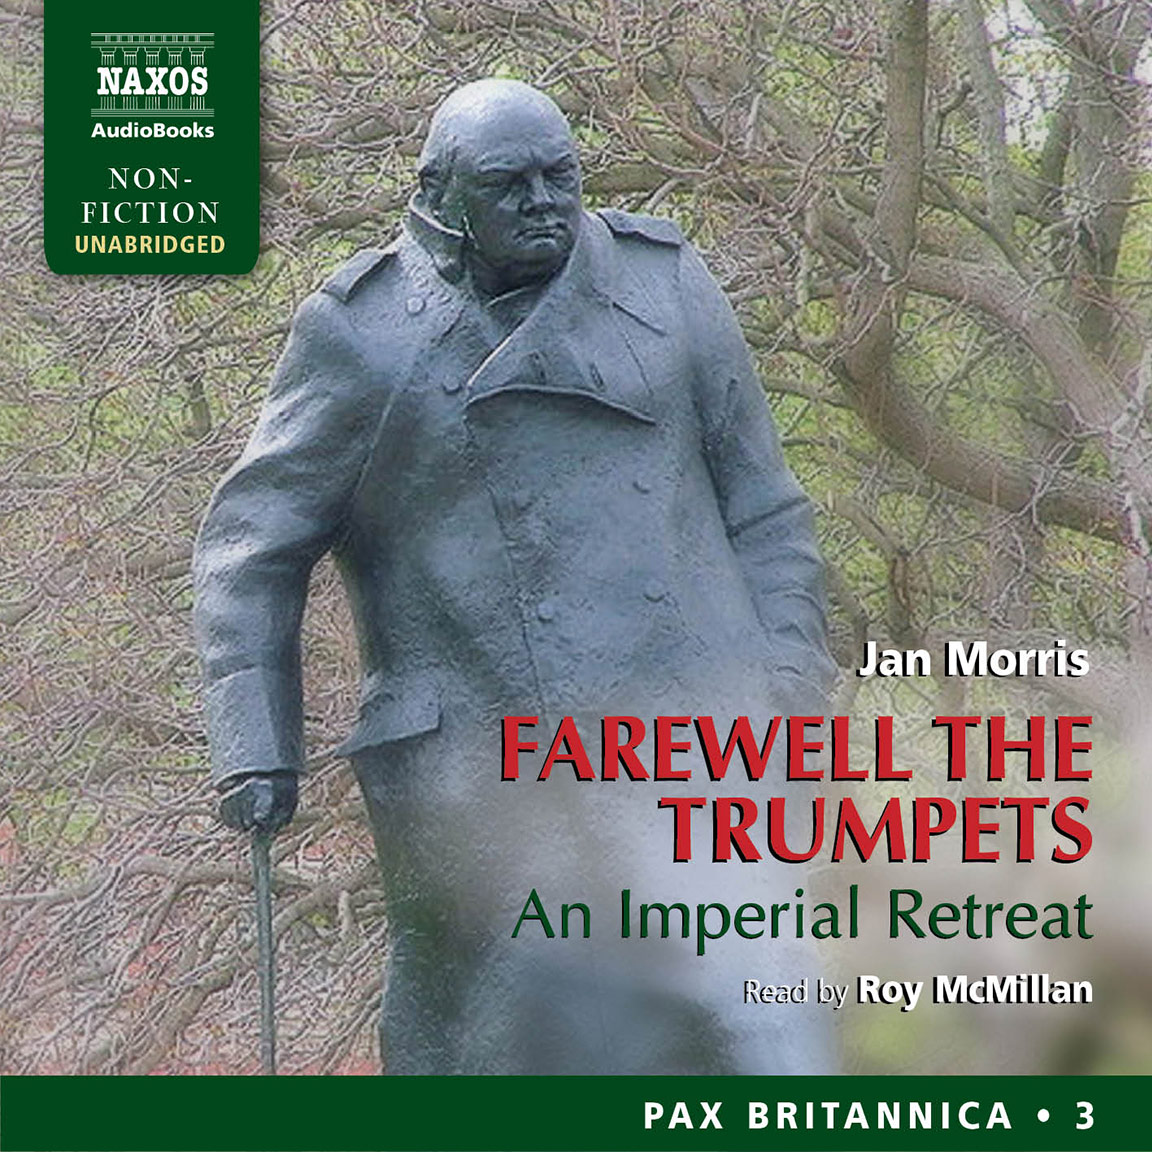 Farewell the Trumpets (unabridged)